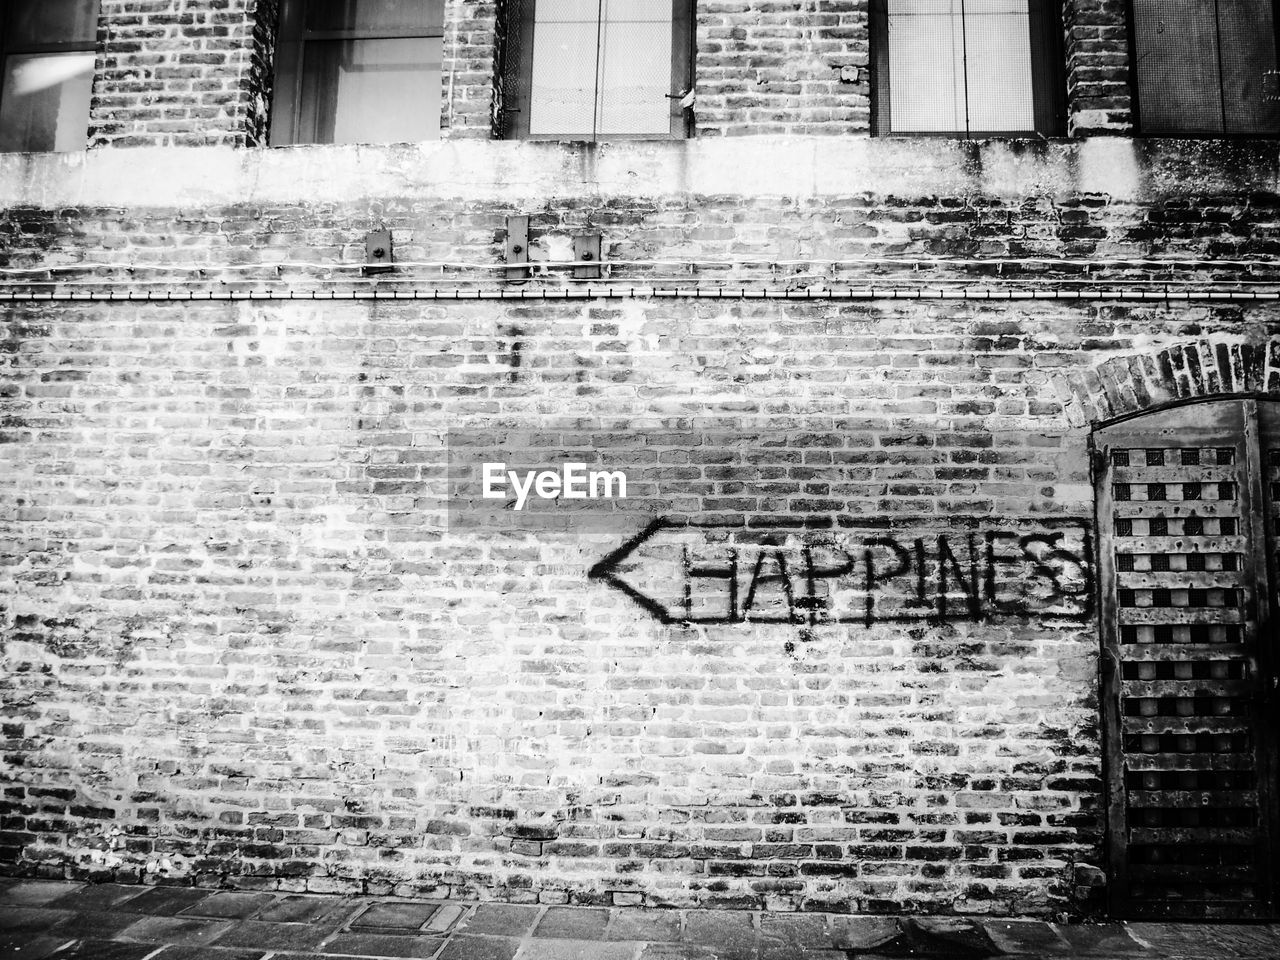 Arrow symbol with happiness text on brick wall